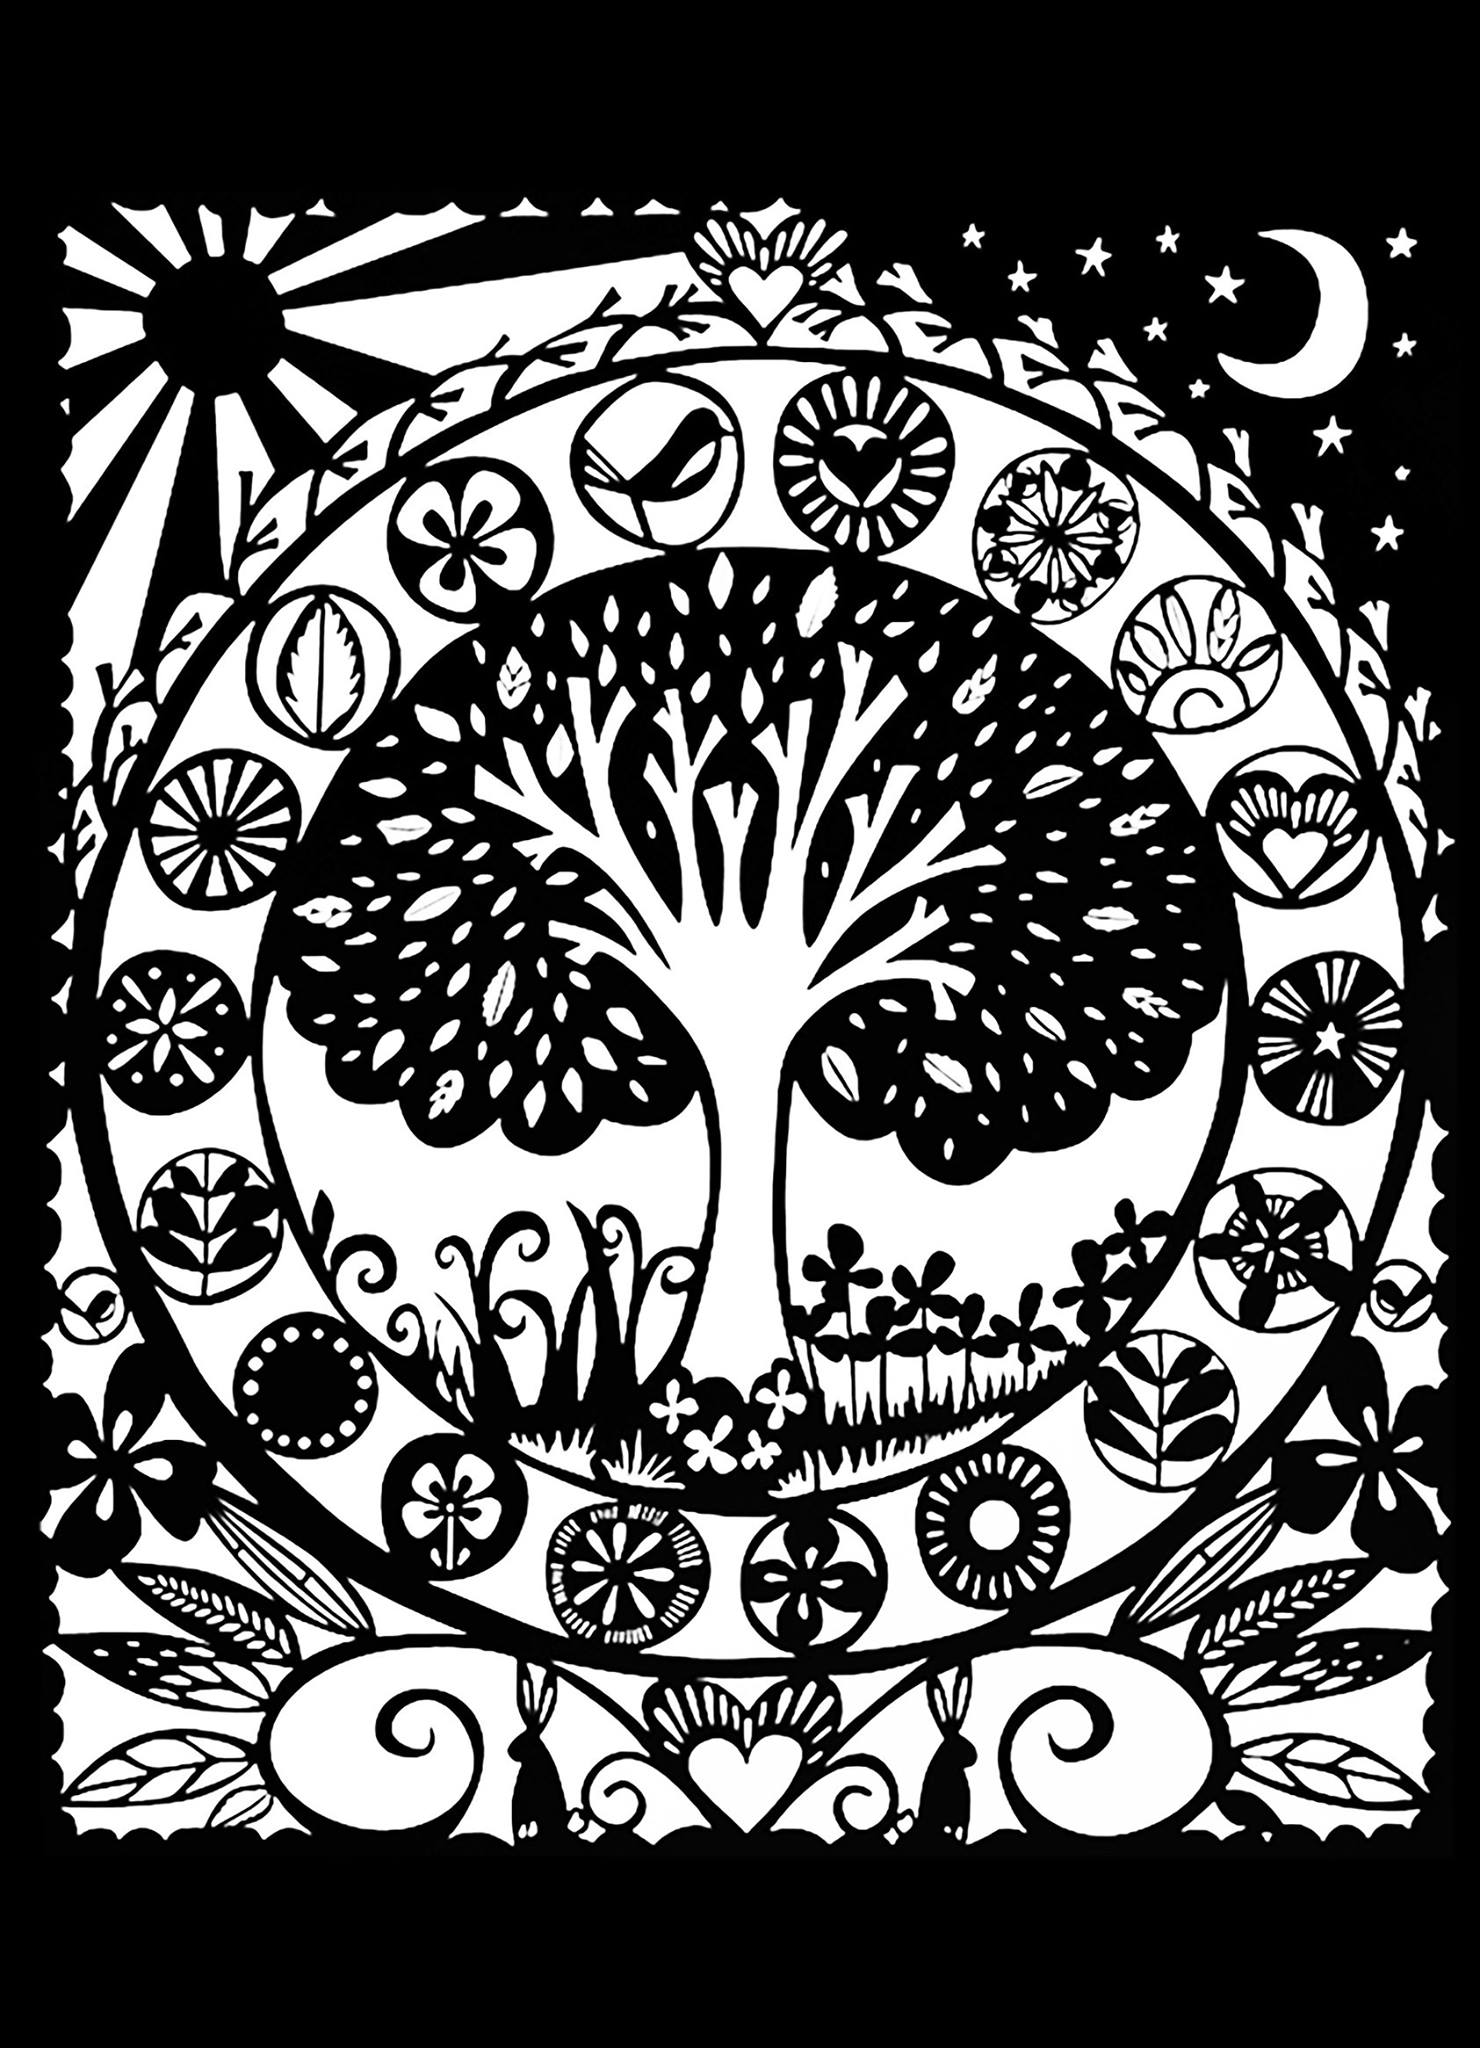 Coloring pages trees and flowers - Beautiful Tree To Color Black Version From The Gallery Flowers And Vegetation